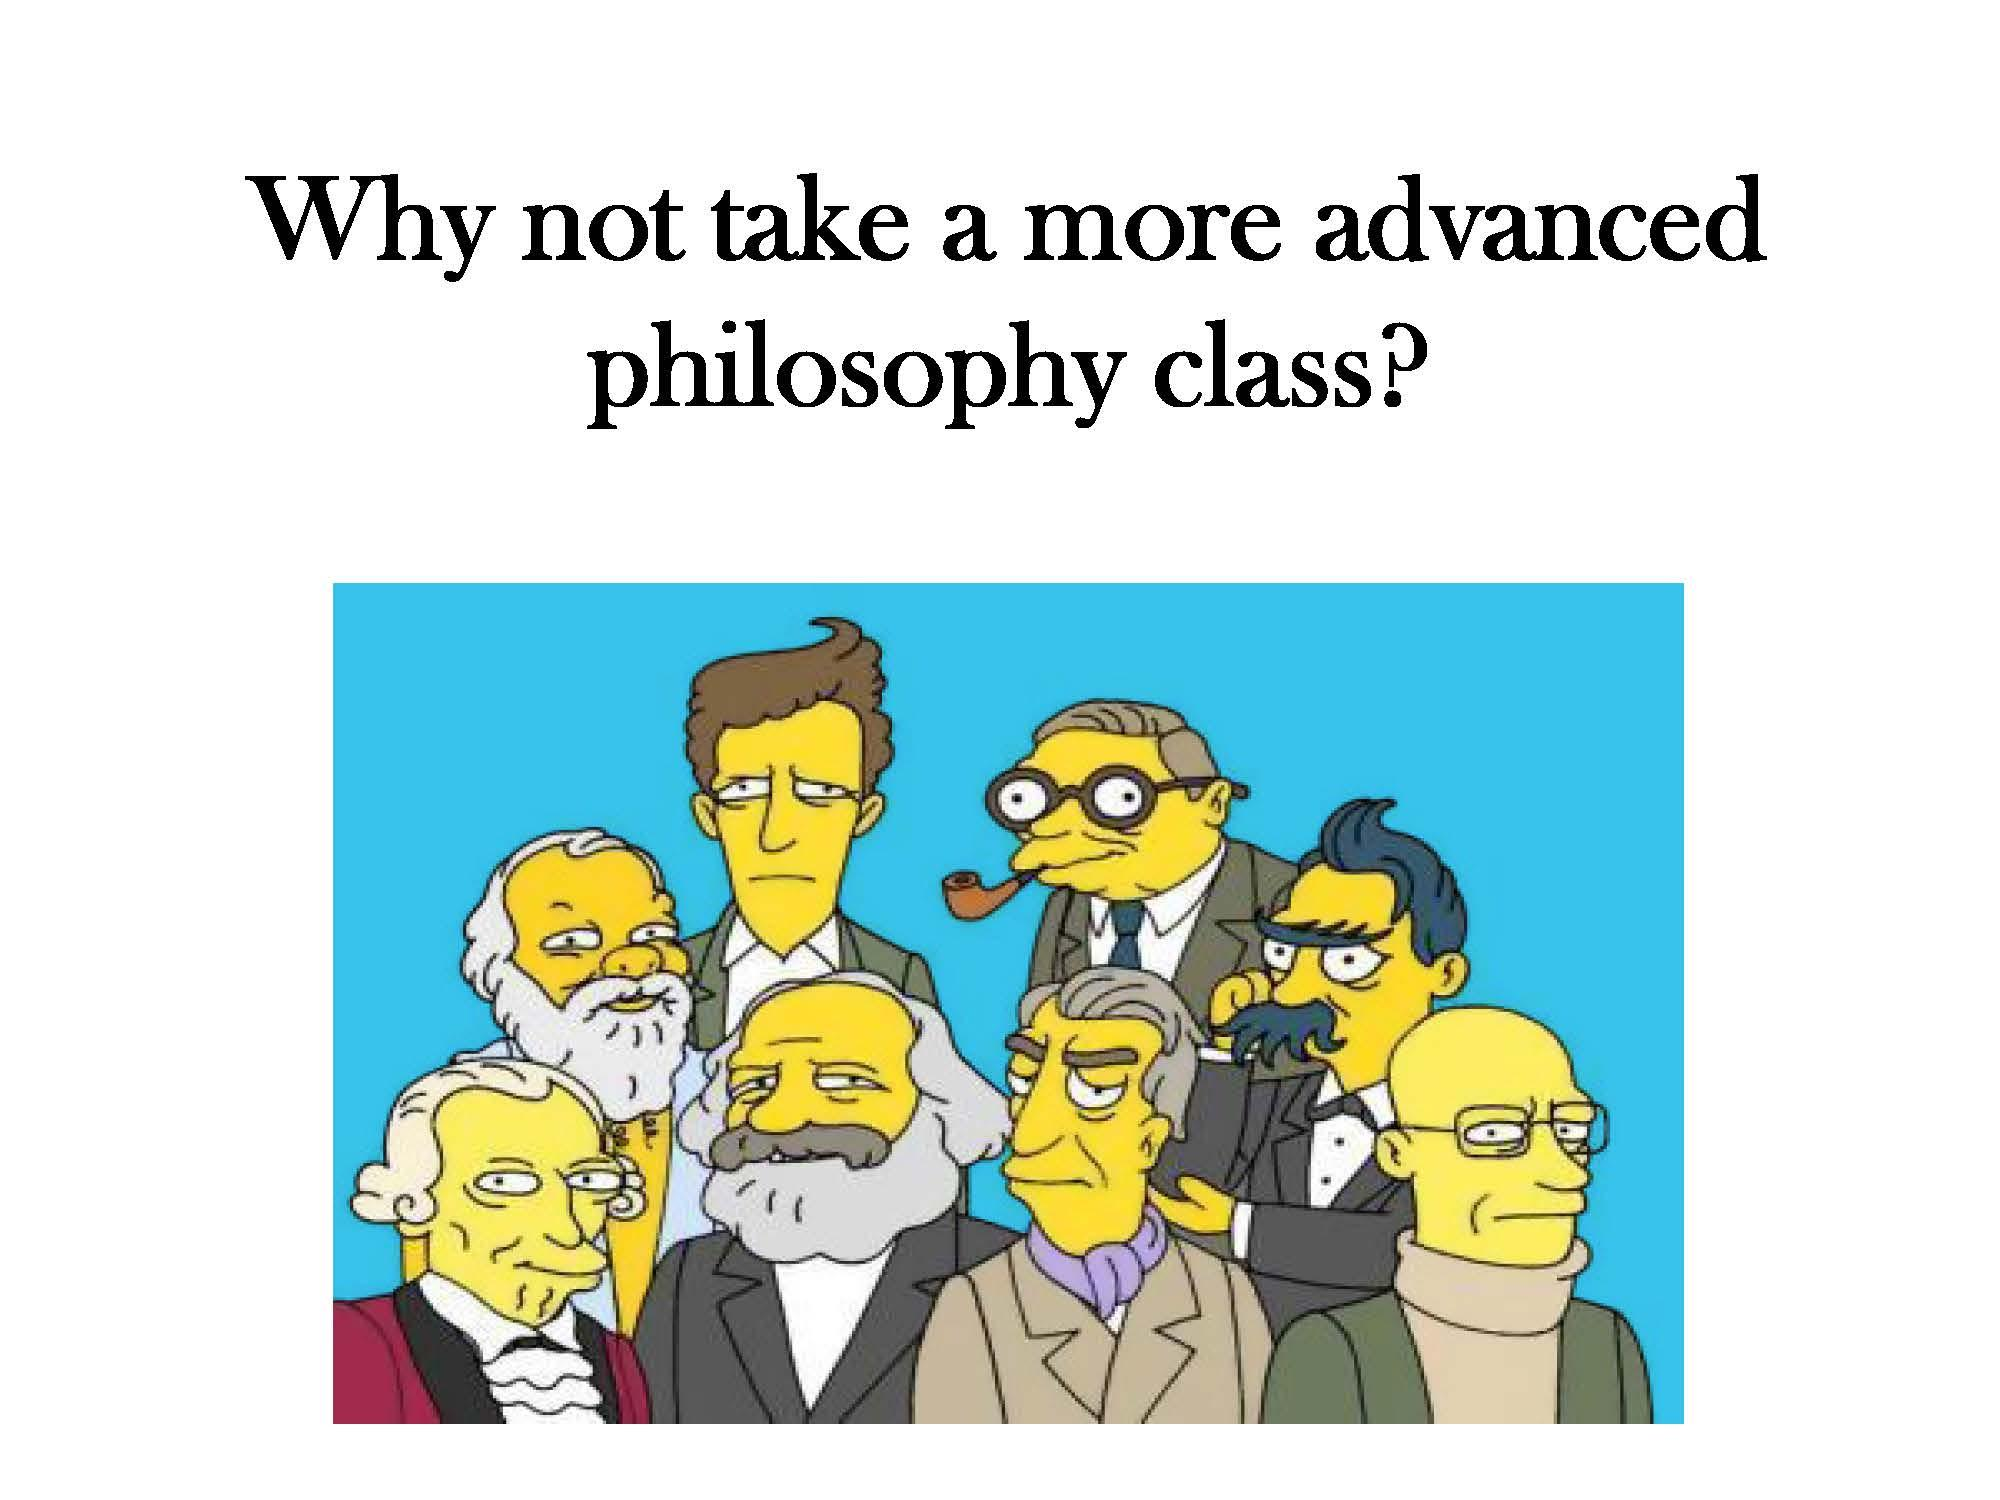 Why not take an advanced class?